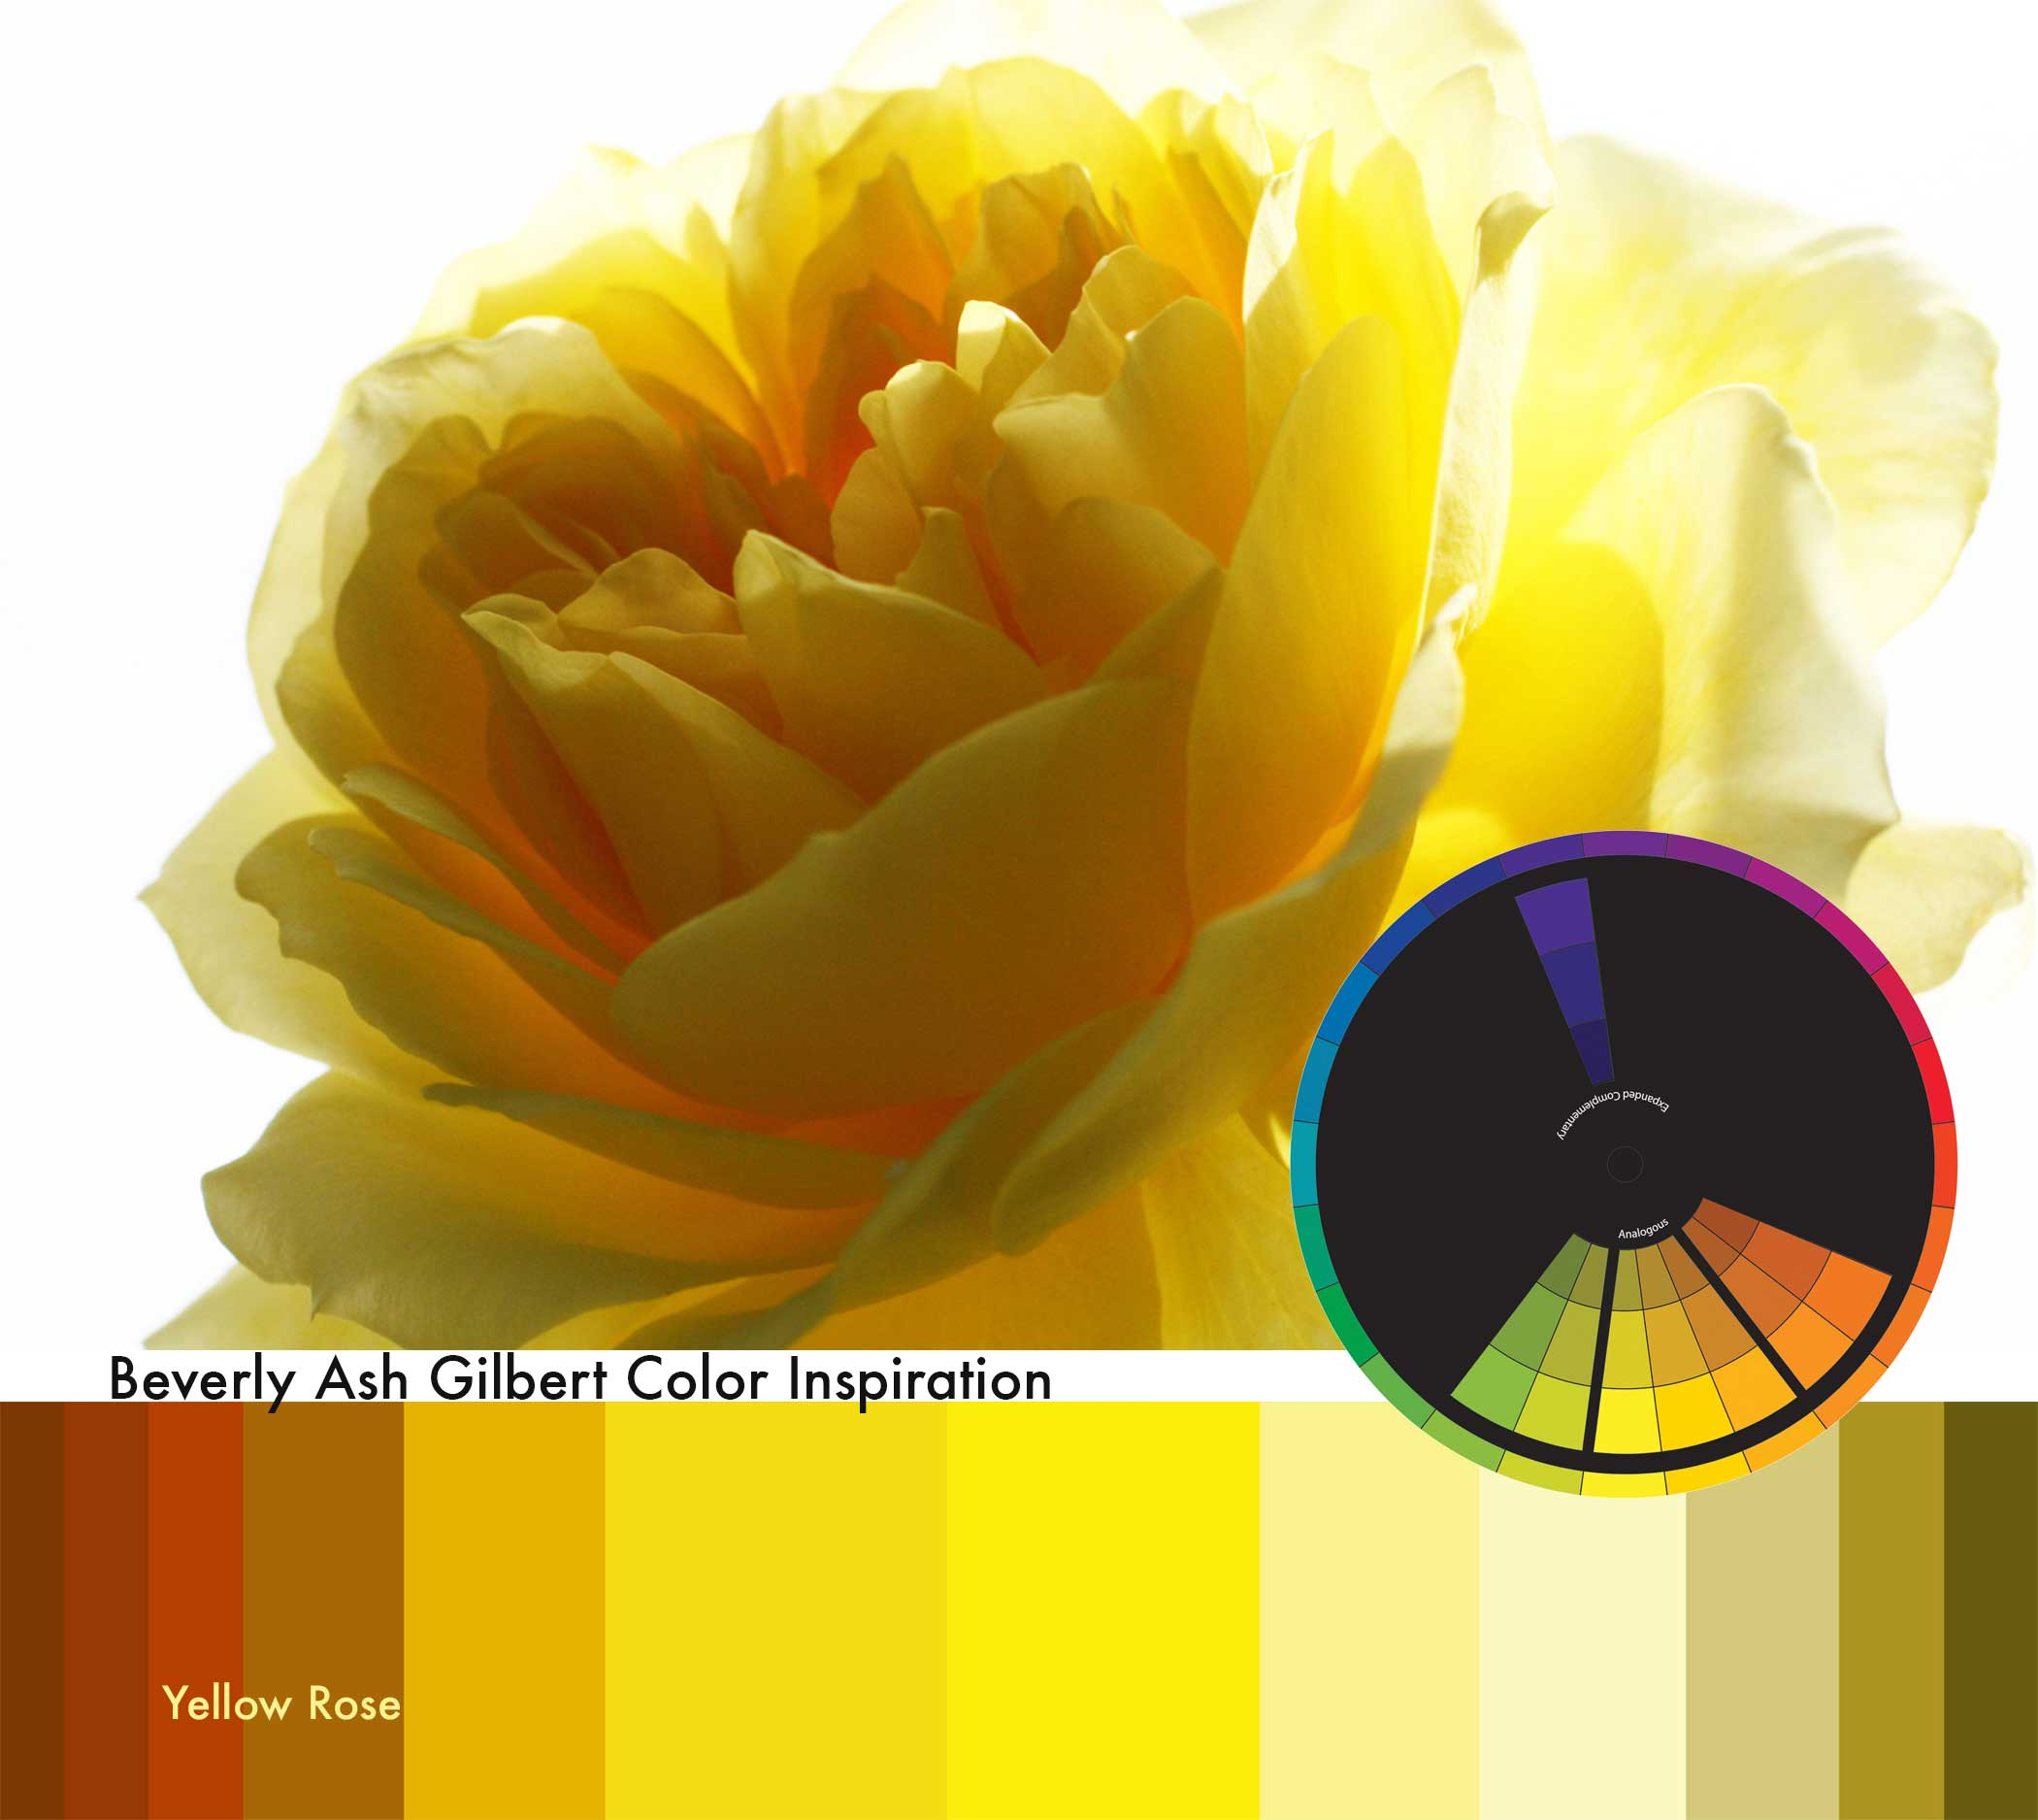 ColorInspiration_YellowRose_small.jpg